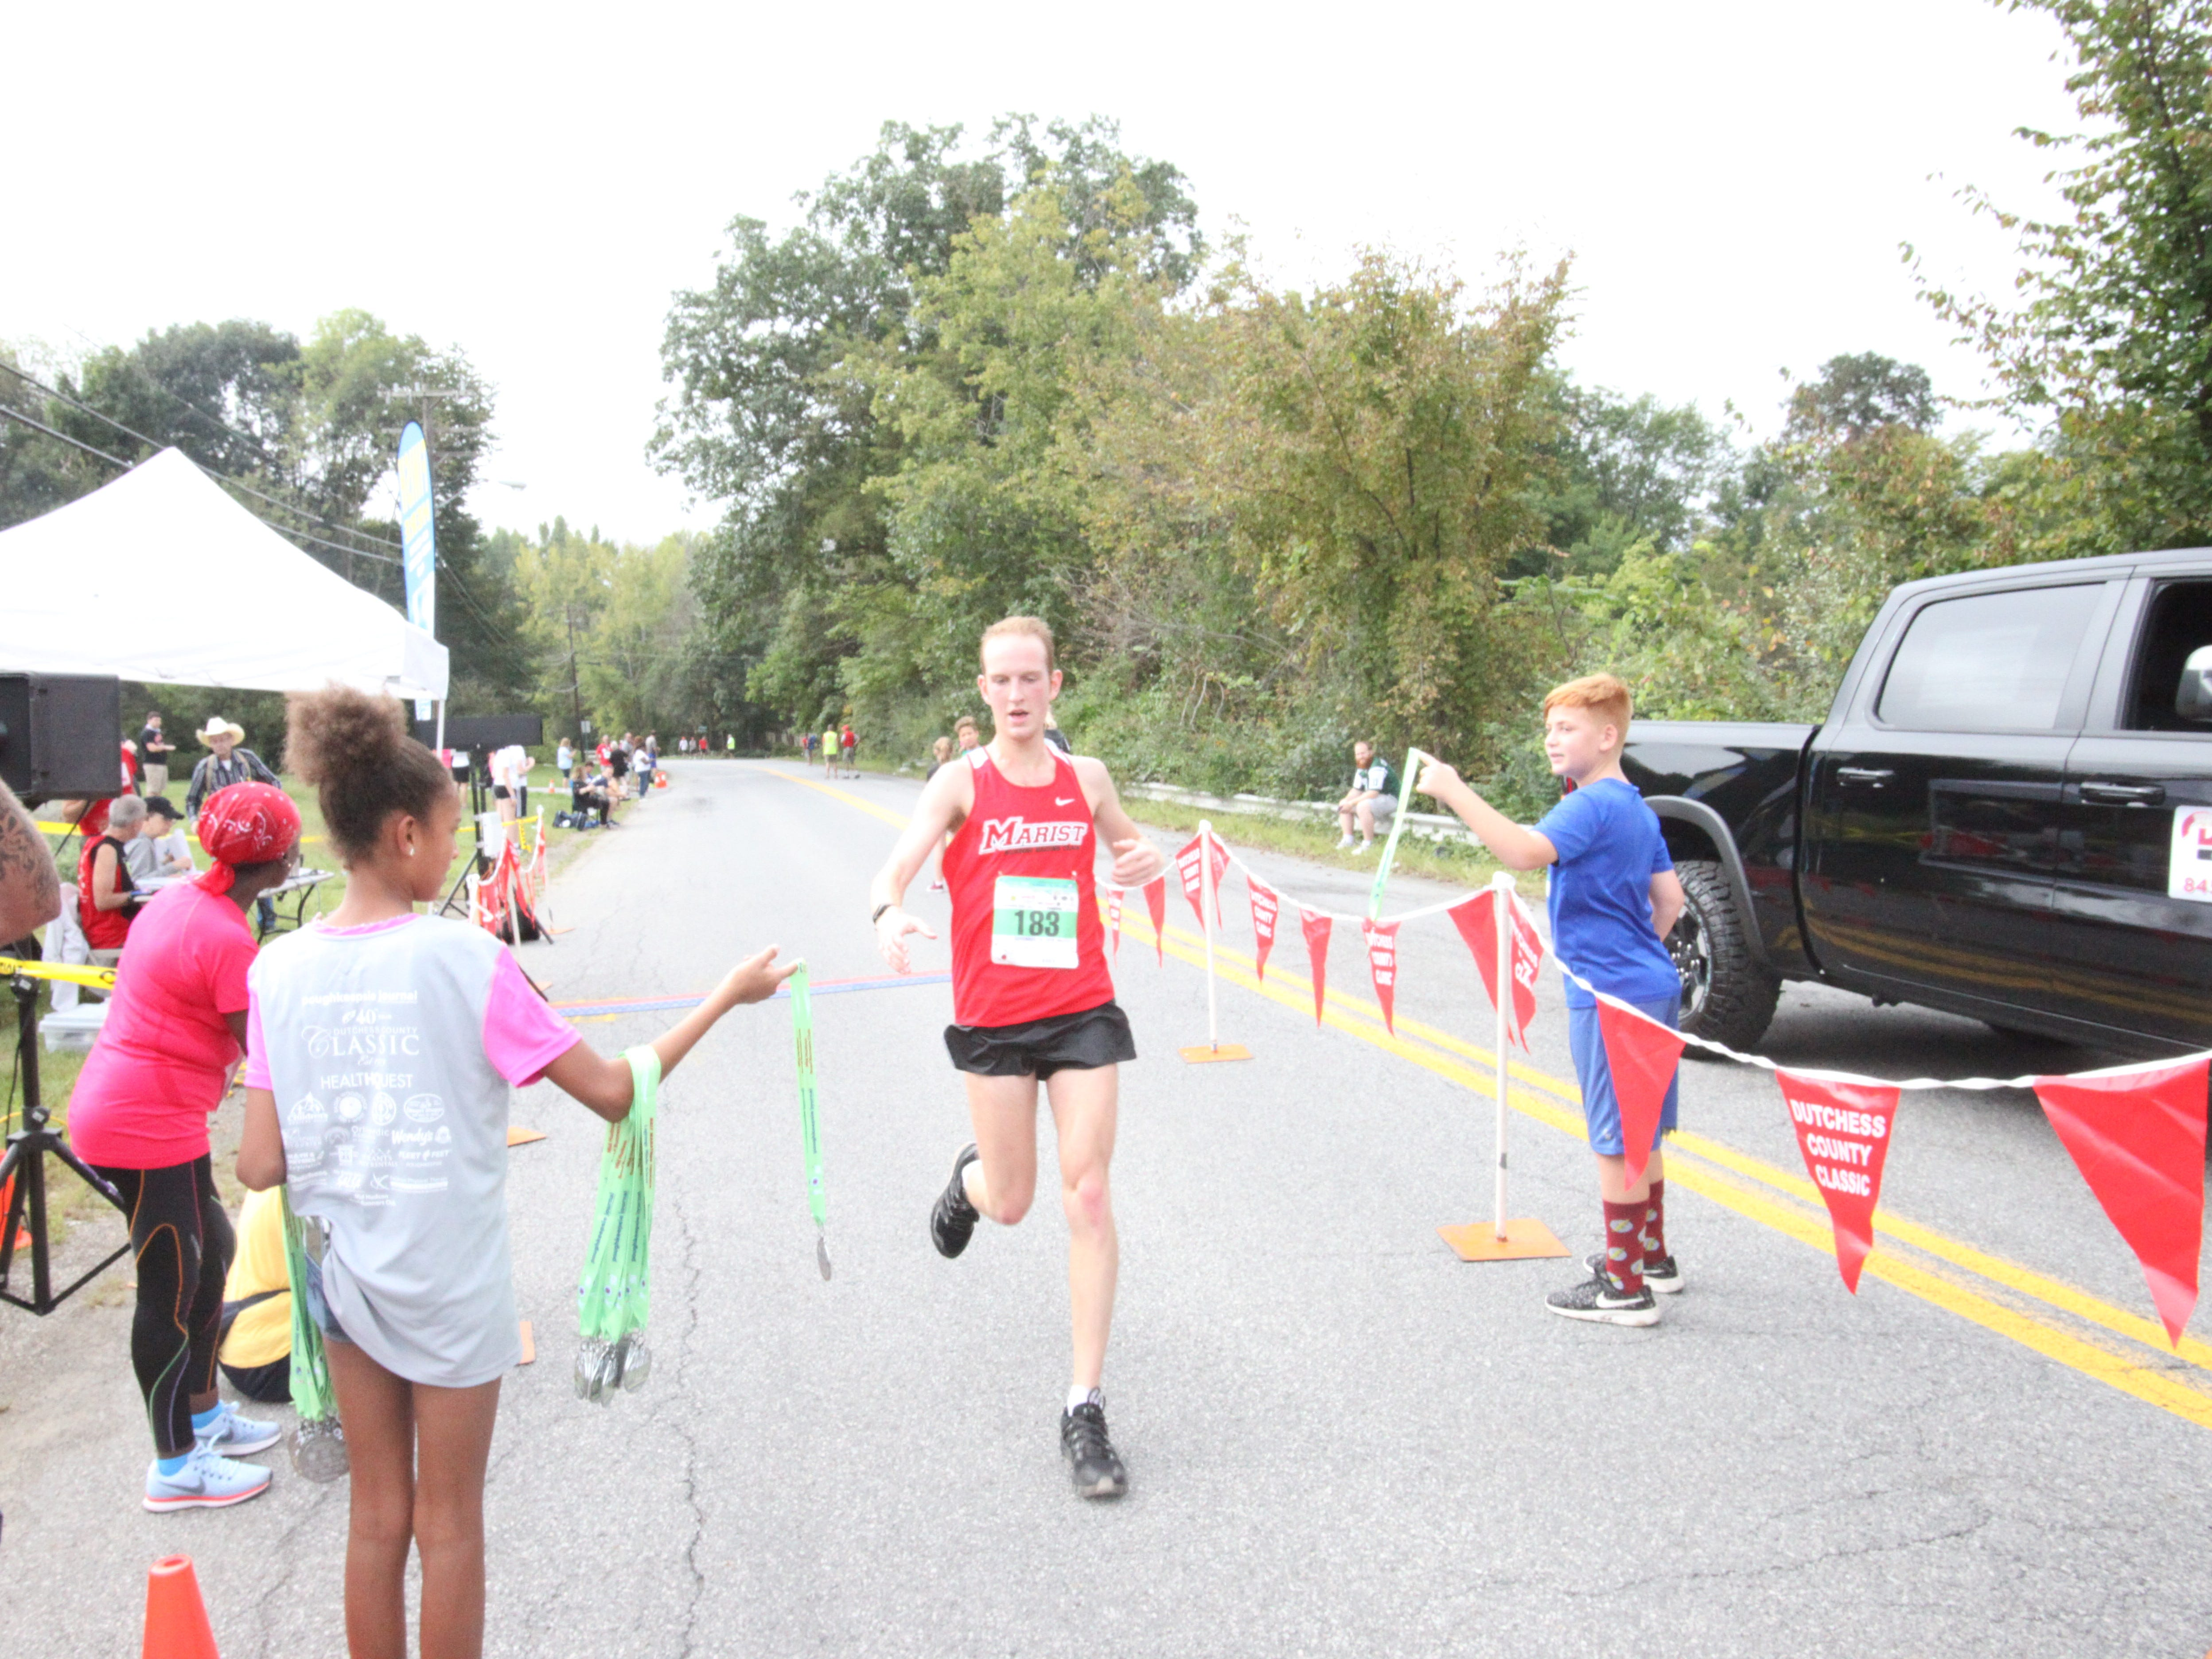 Dietrich Mosel, a former Marist College runner, crosses the finish line in second place in the men's half marathon at the Dutchess County Classic.